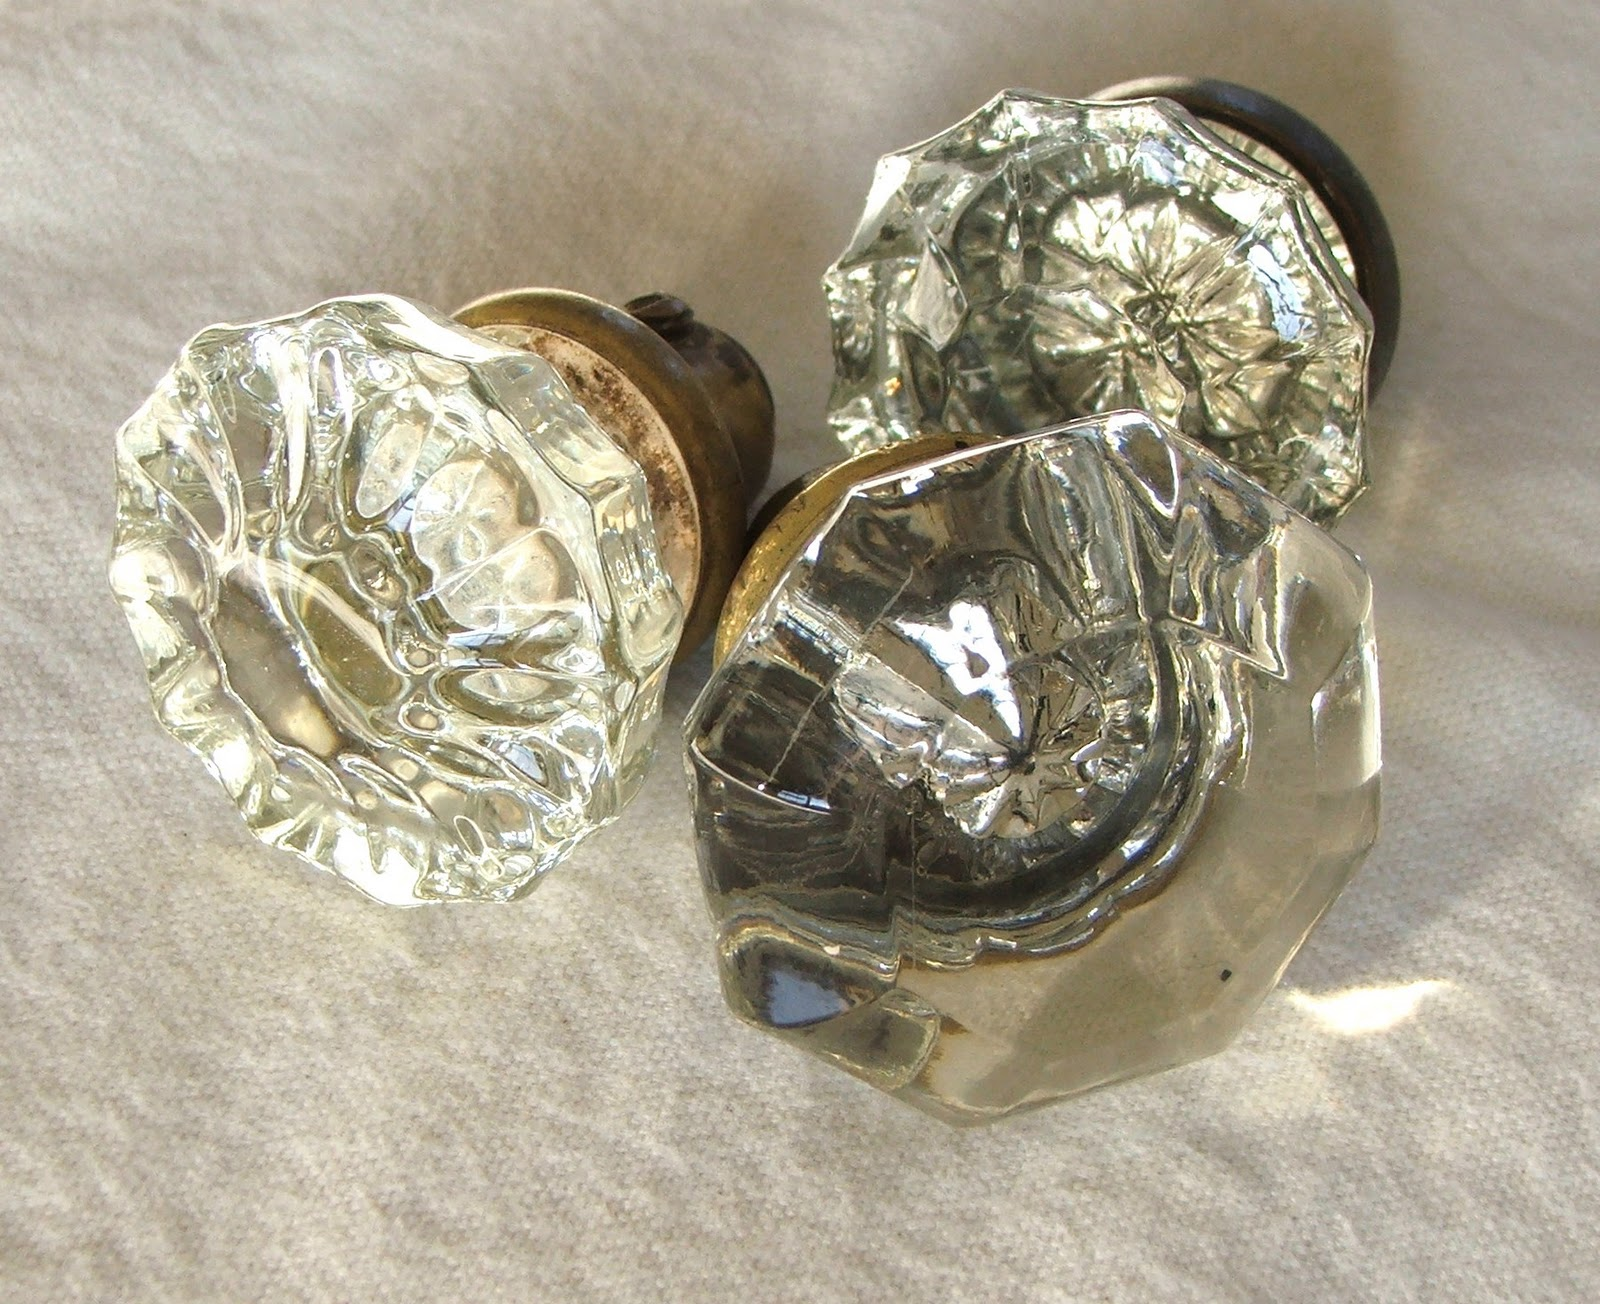 doors antique knobs glass door clear retrocomputinggeek com old pin